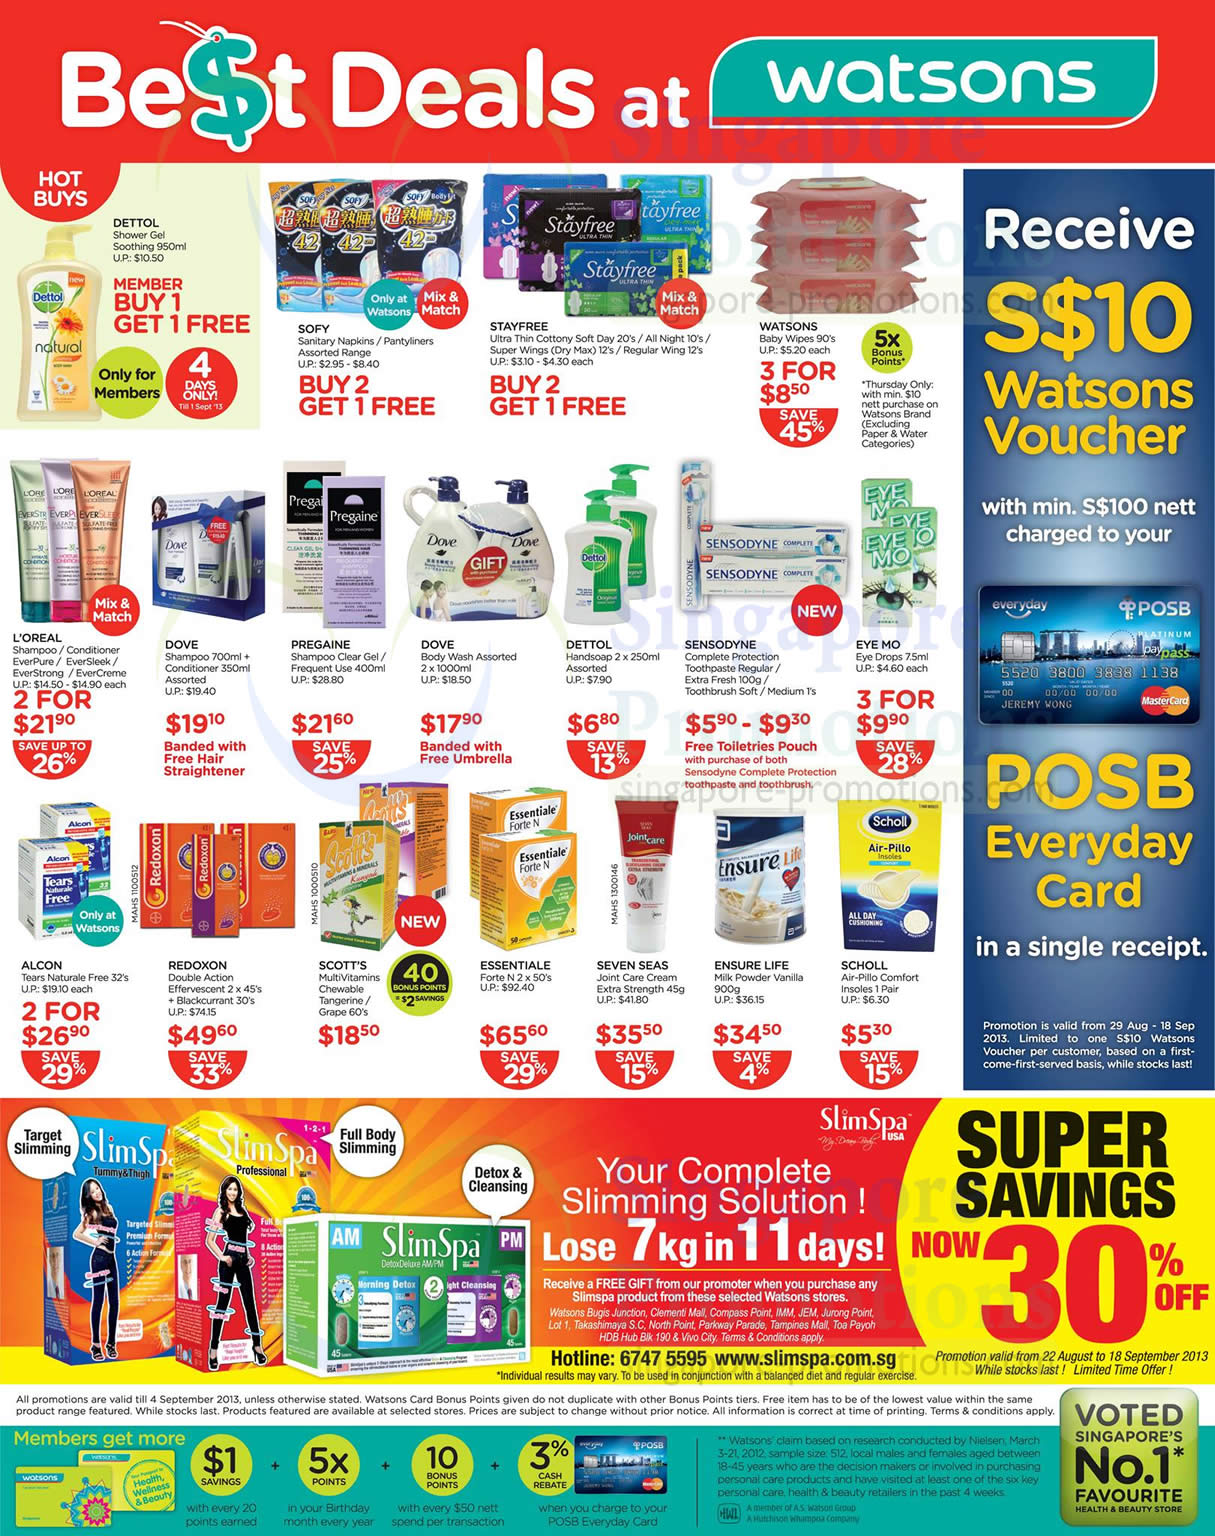 Hot Buys, Slimspa USA, Essentiale, Dove, Dettol, Sensodyne, Redoxon, Seven Seas, Ensure Life